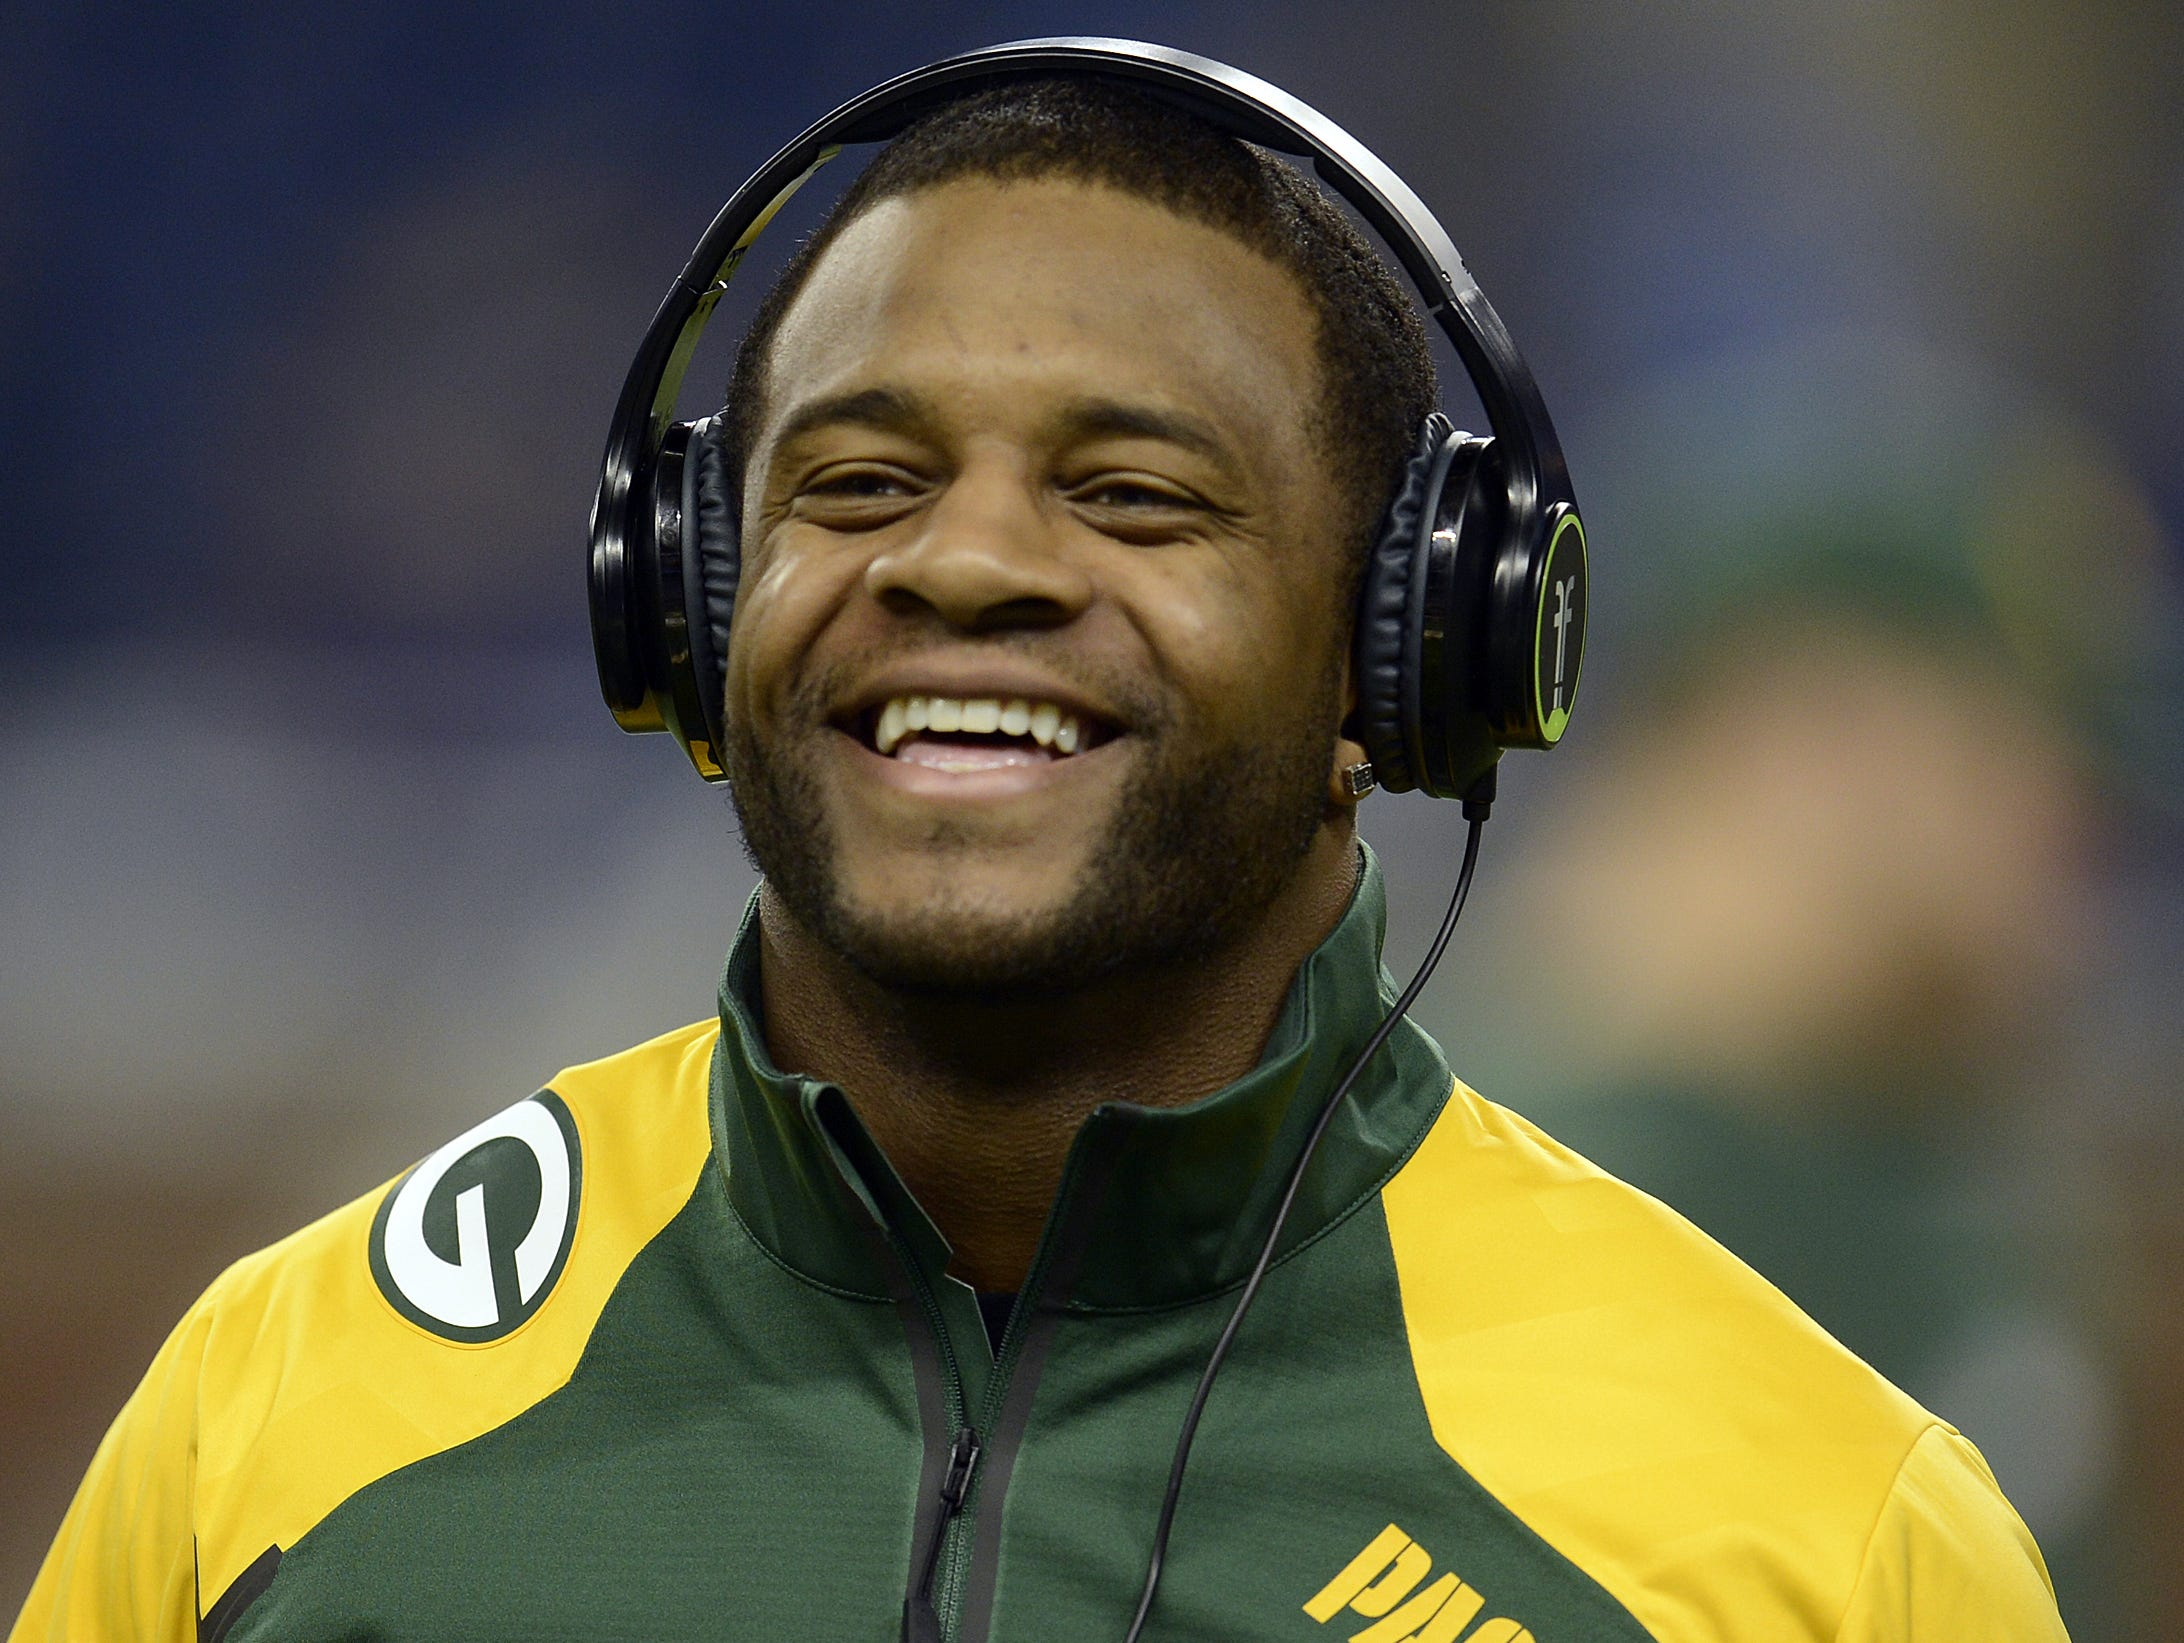 Randall Cobb to Packers fans: 'It was an honor to wear the G and represent you all'